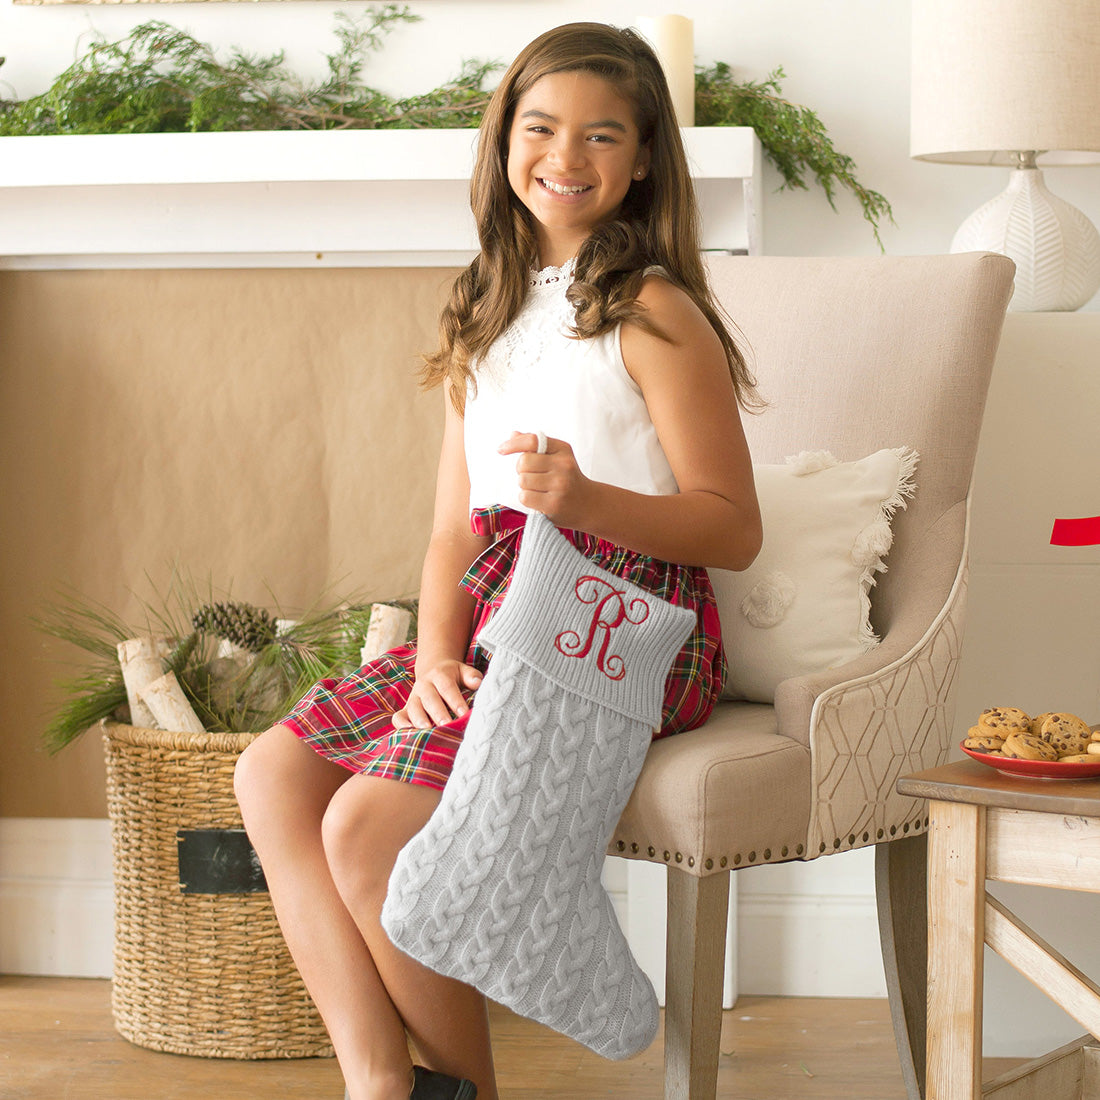 Classic Cable Knit Christmas Stocking in Grey - with Monogram,Christmas stocking - Dirt Road Divas Boutique